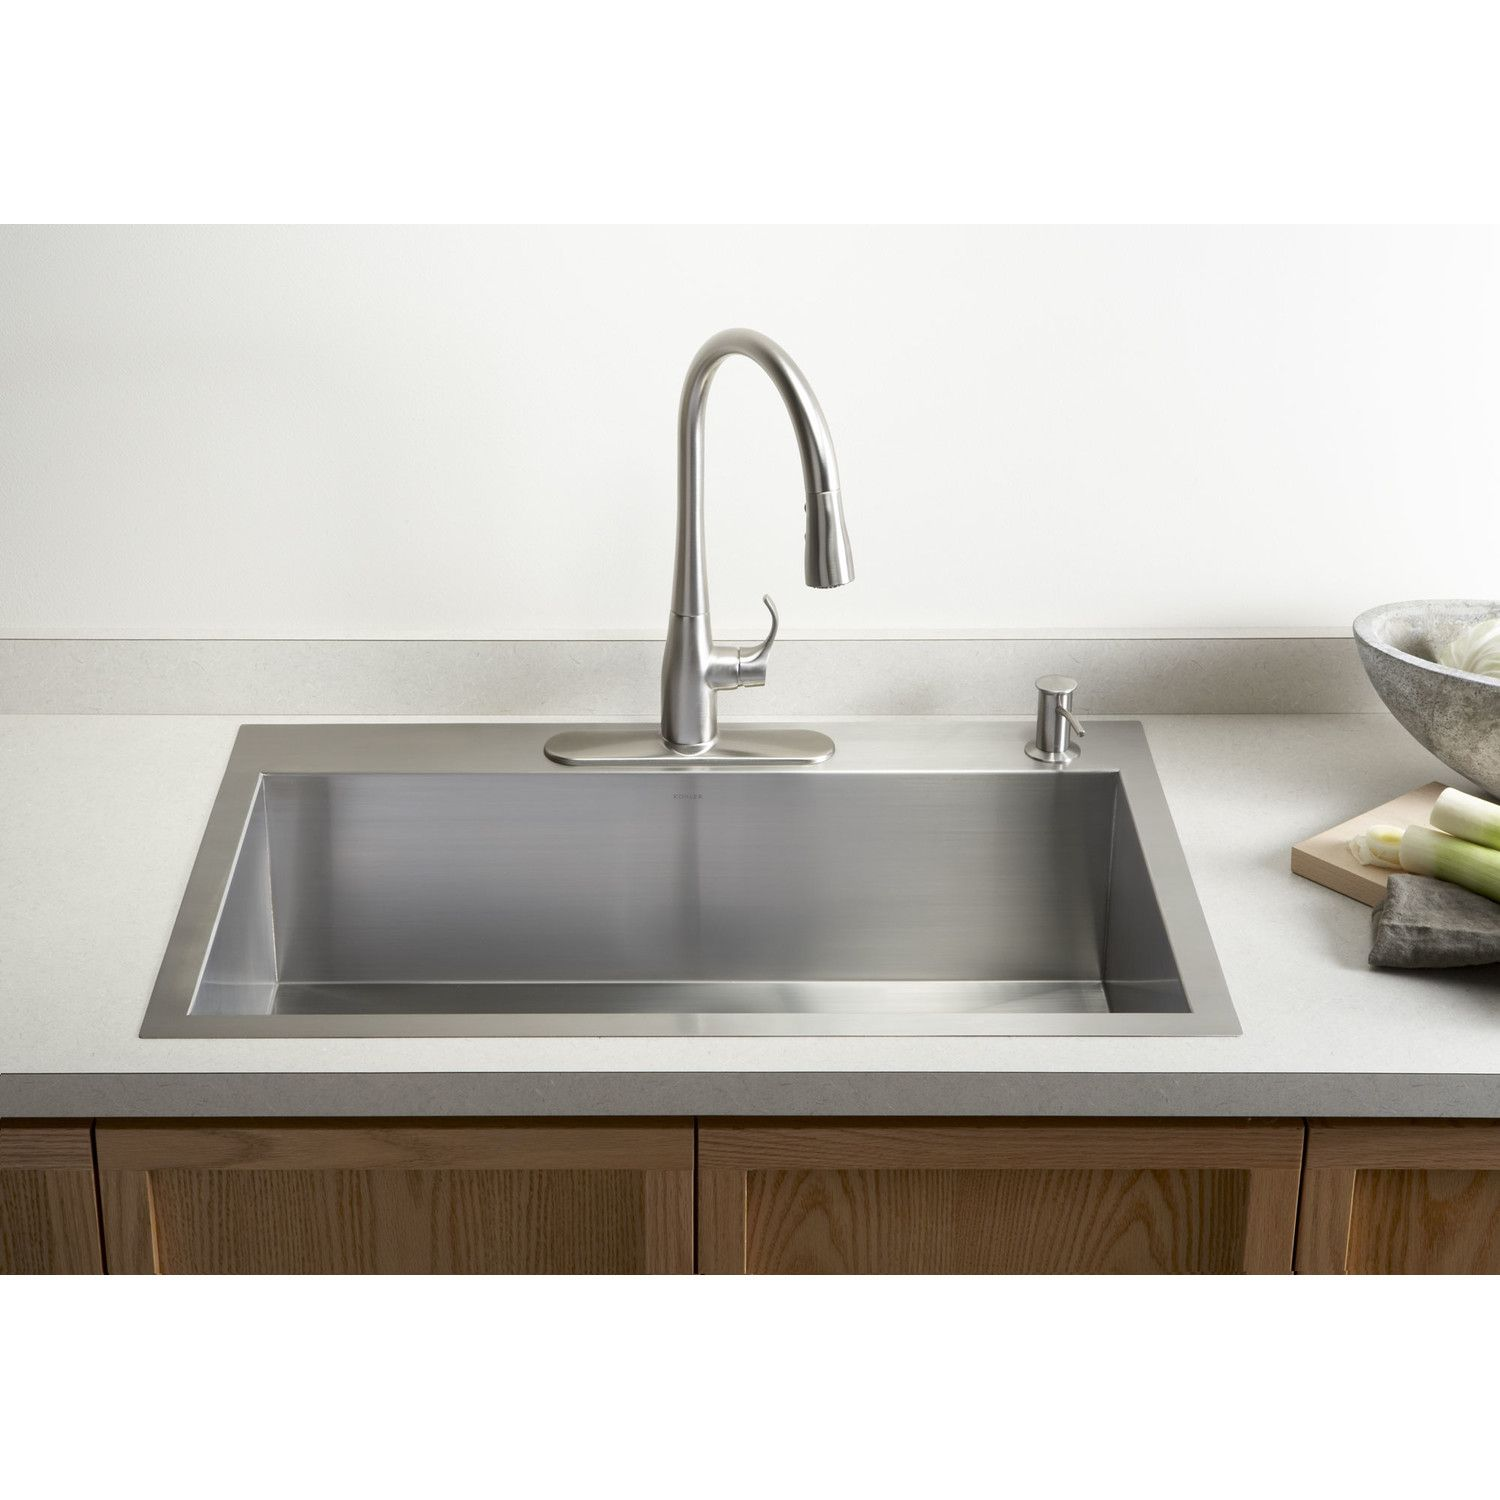 Vault 33 L X 22 W X 9 5 16 Top Mount Under Mount Large Single Bowl Kitchen Sink With Single Faucet Hole Modern Kitchen Sinks Top Mount Kitchen Sink Kohler Kitchen Sink